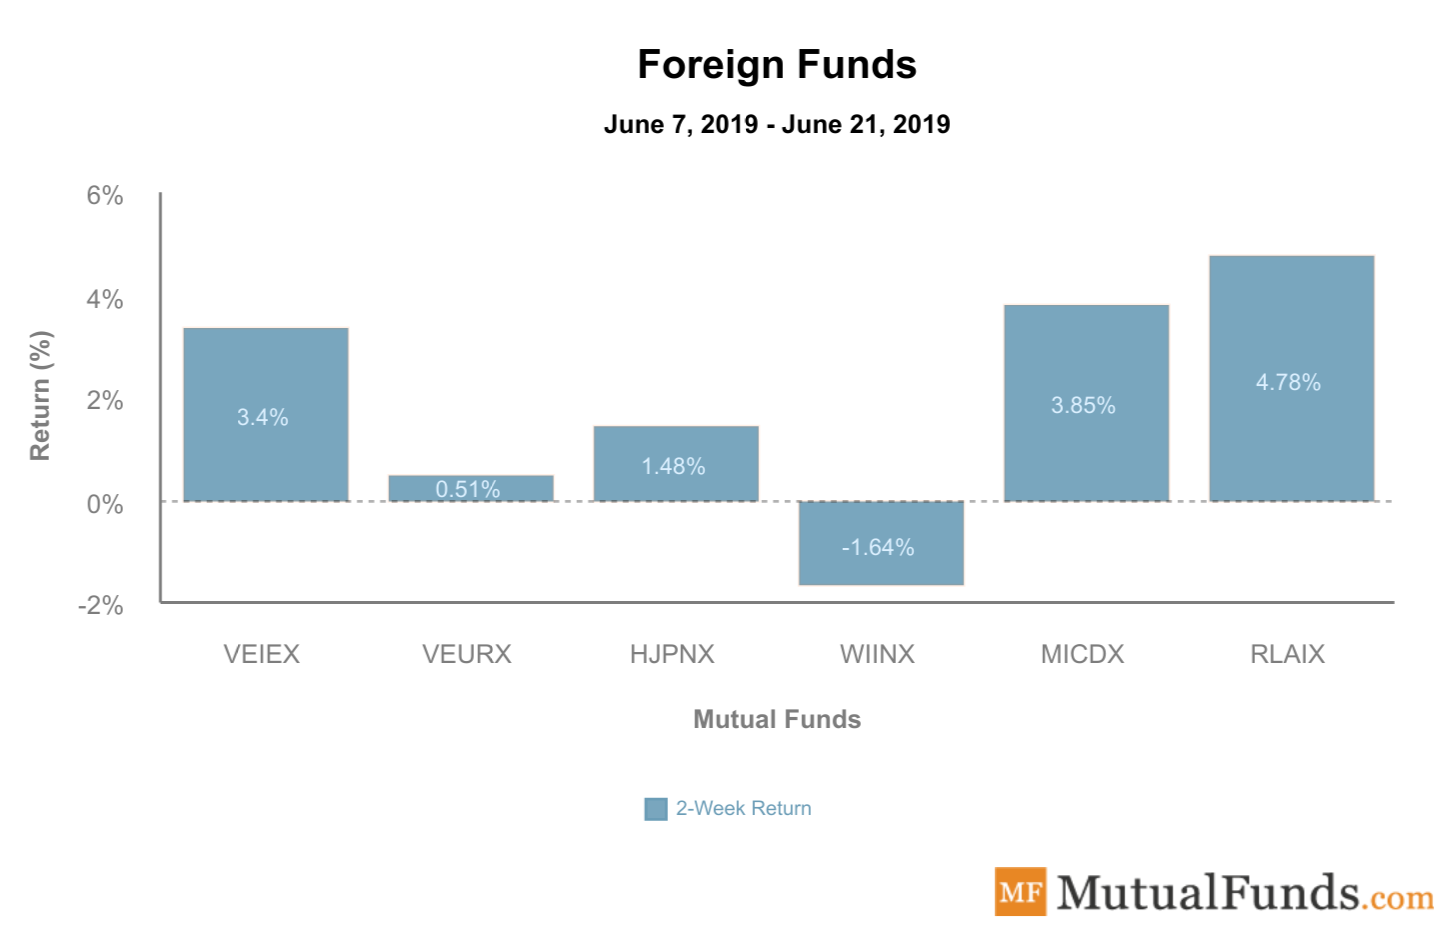 Foreign Funds June 25 2019